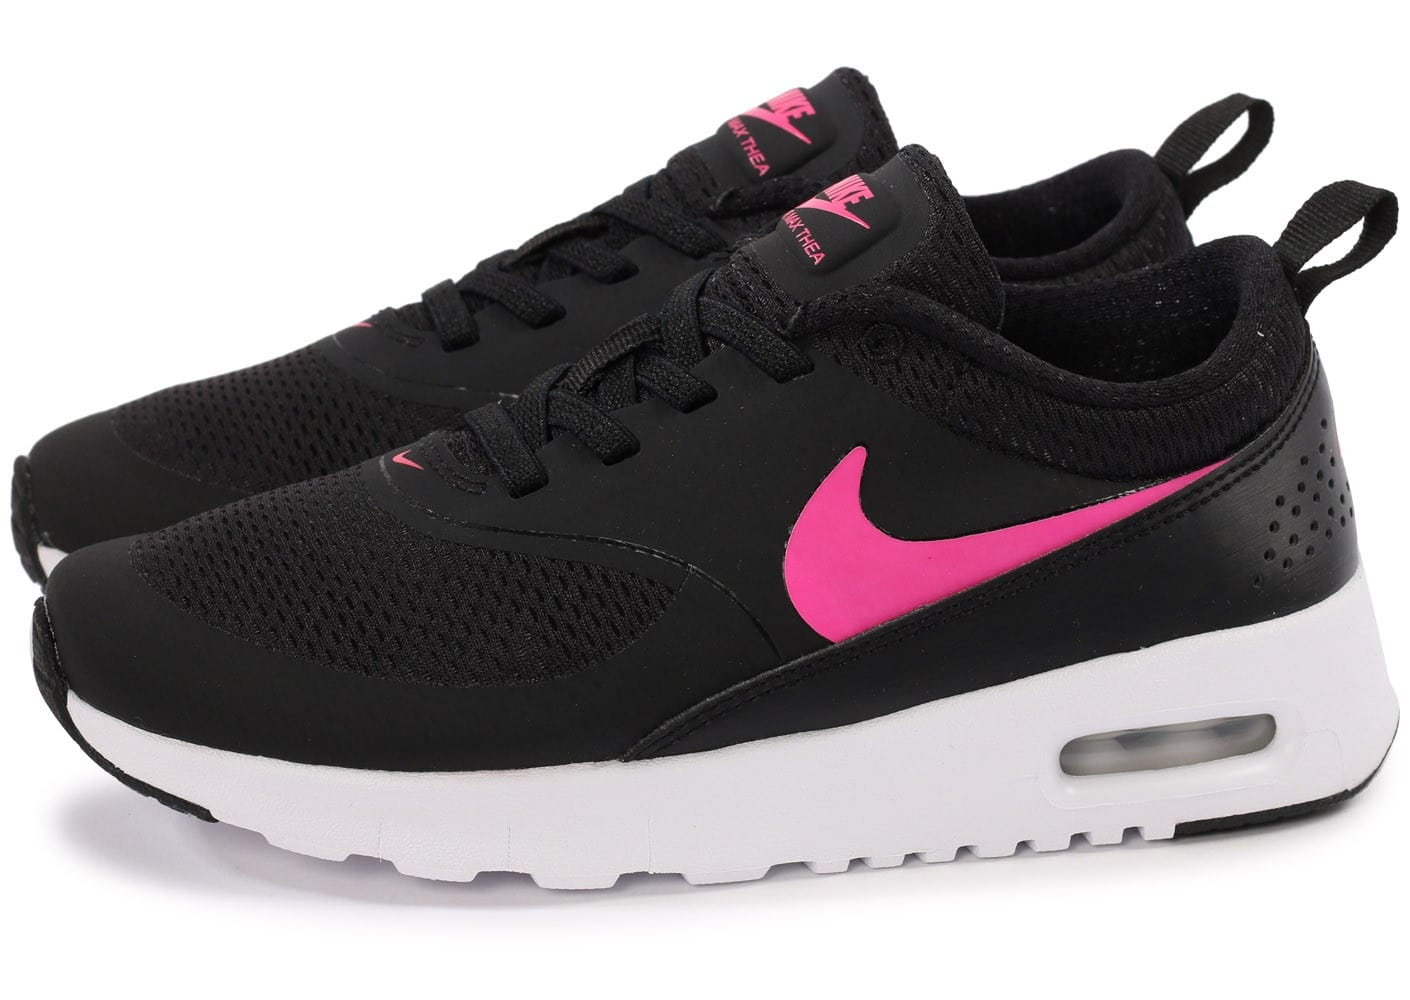 Magasin de gros nike air max thea chasures 6UH23